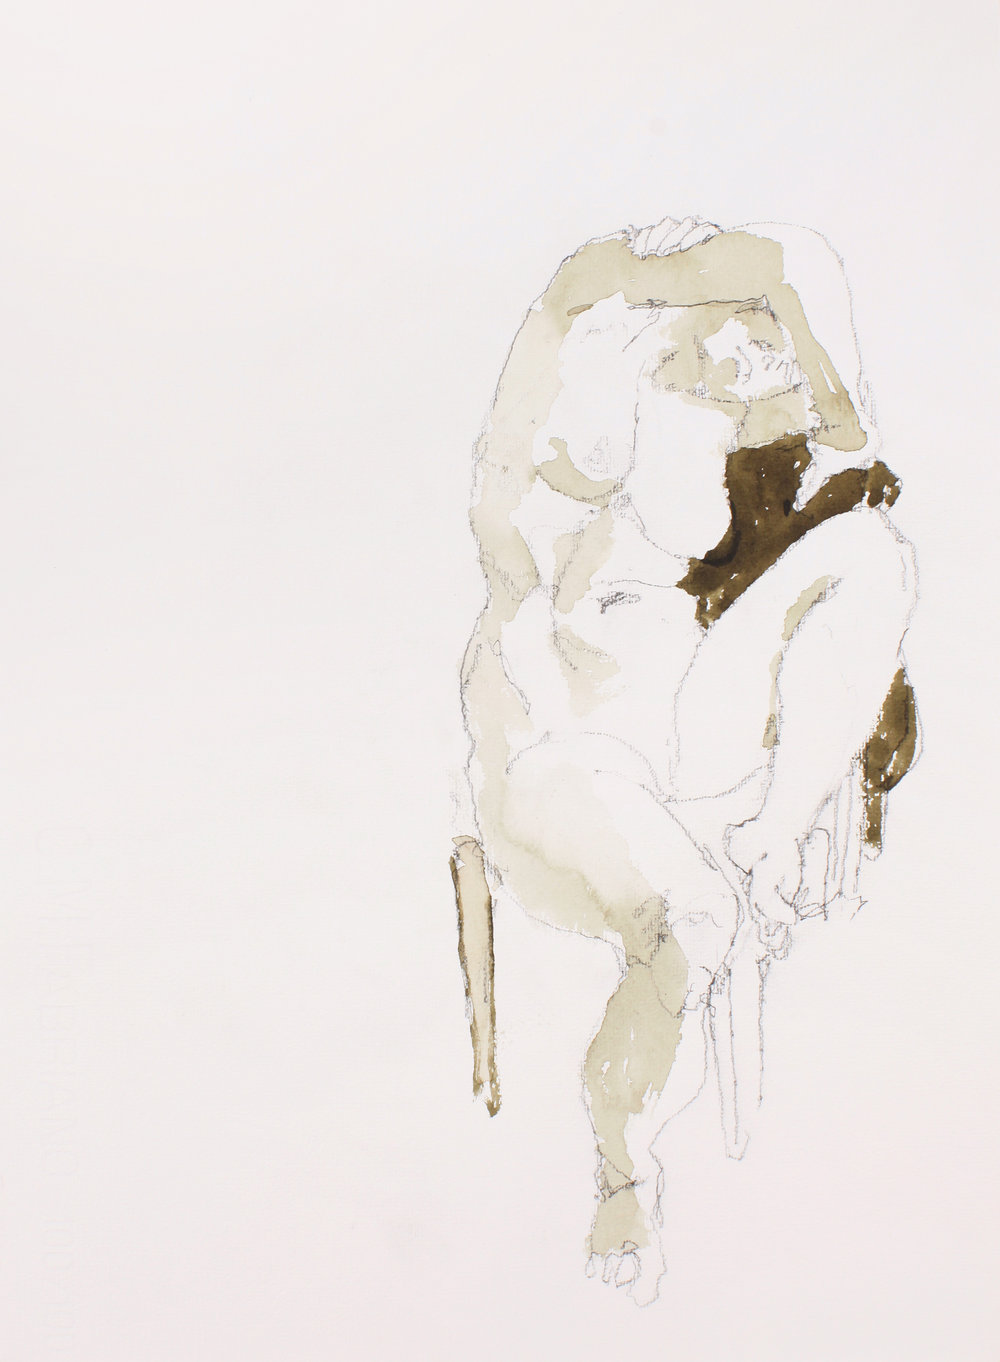 2004_Seated_Nude_with_Raised_Arms_watercolour_and_pencil_on_paper_15x11in_WPF236.jpg